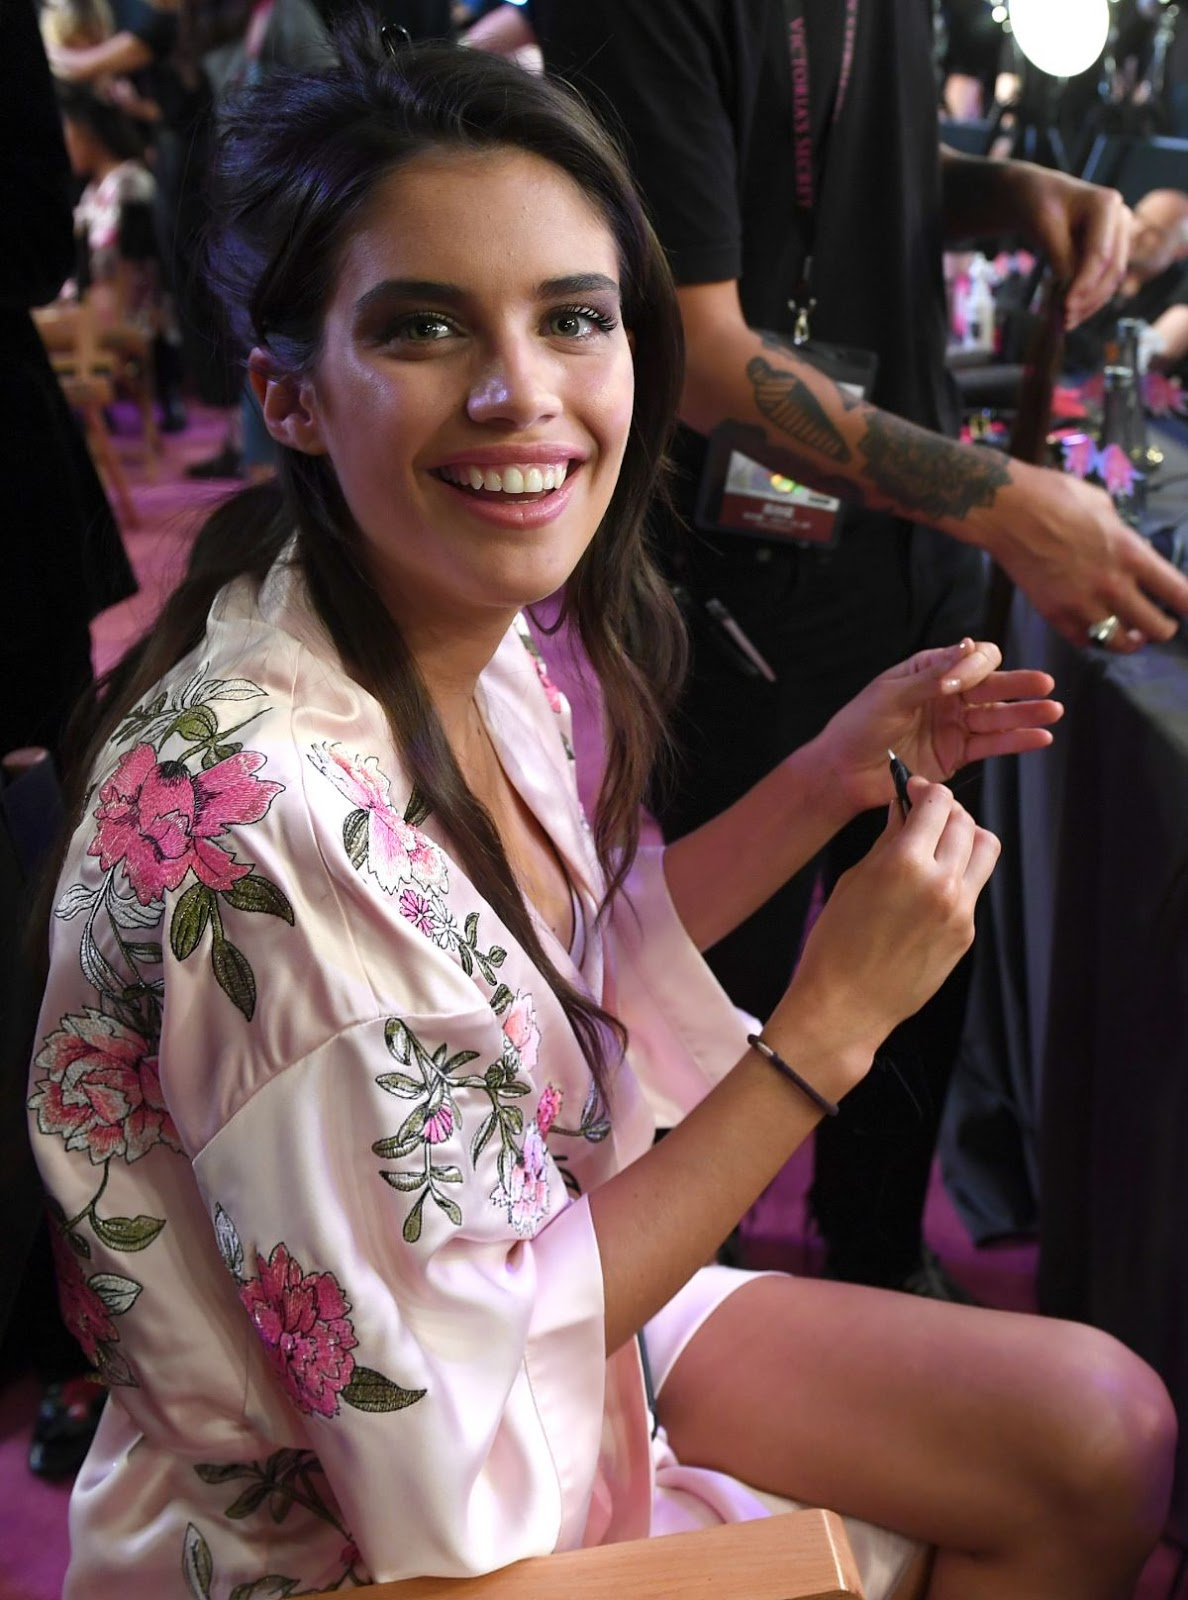 Sara Sampaio on the Backstage at 2017 Victoria's Secret Fashion Show in Shanghai